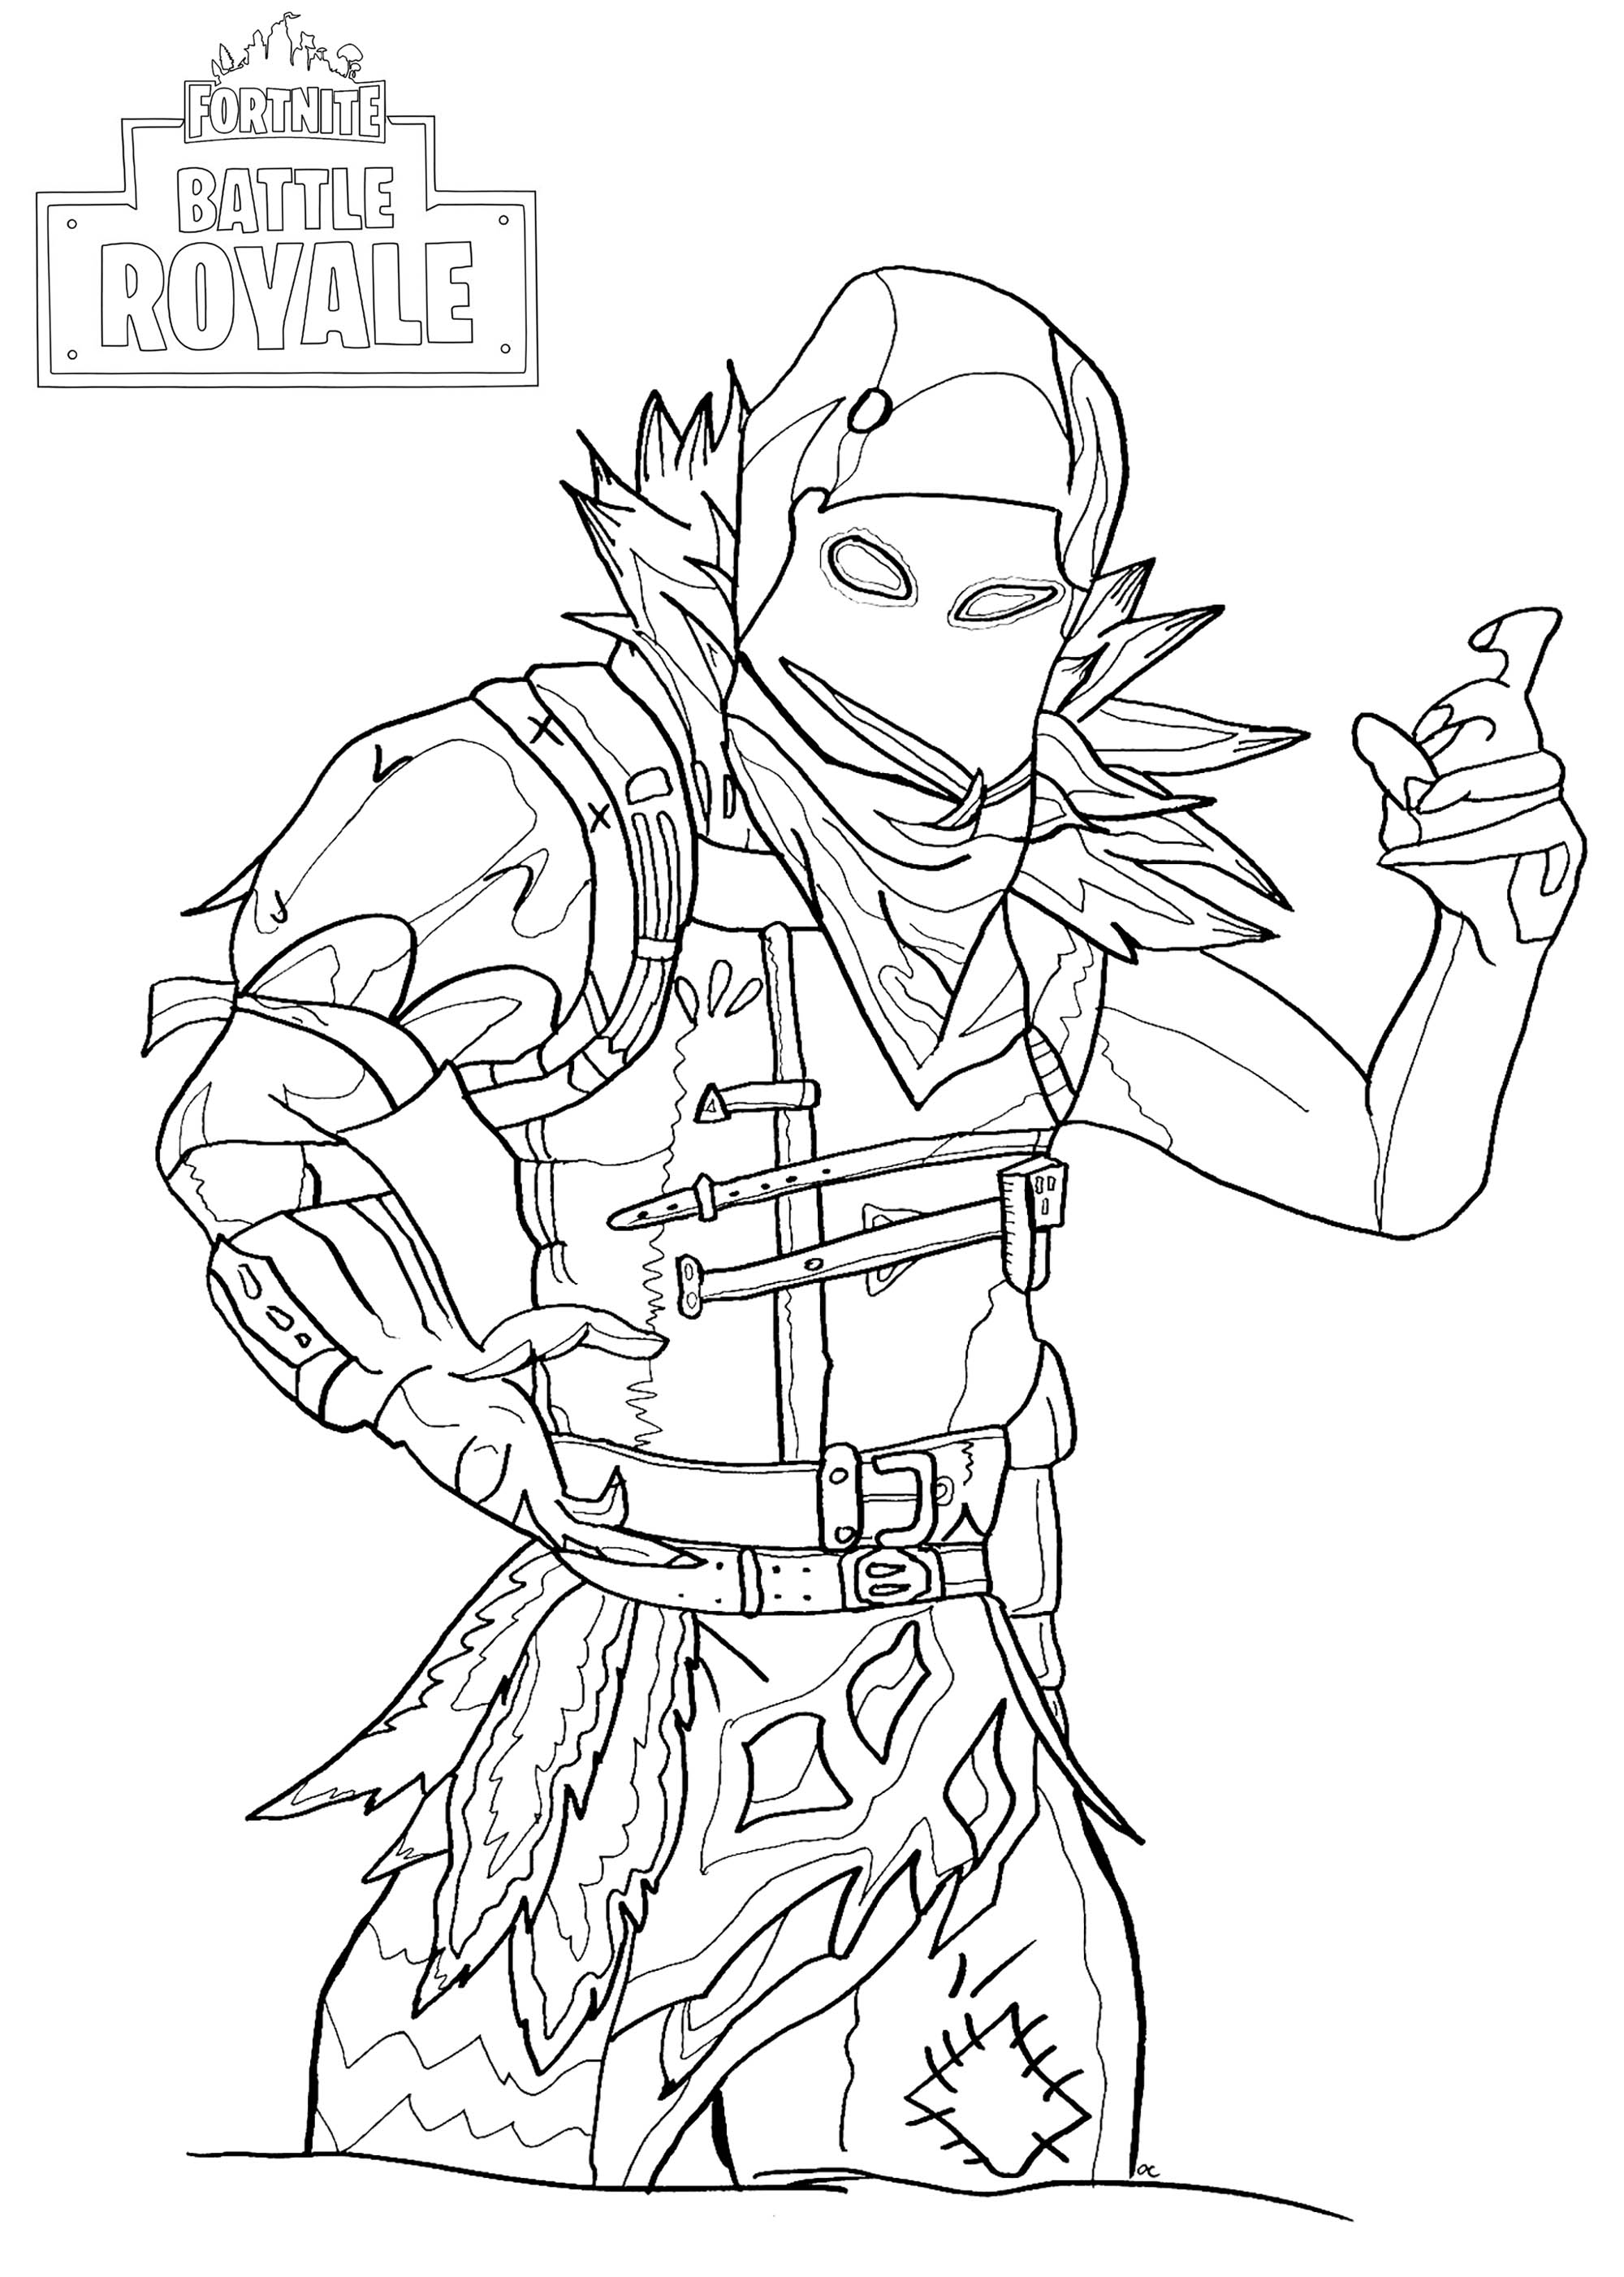 free printable fortnite coloring pages fortnite coloring pictures astronaut with images printable free pages coloring fortnite